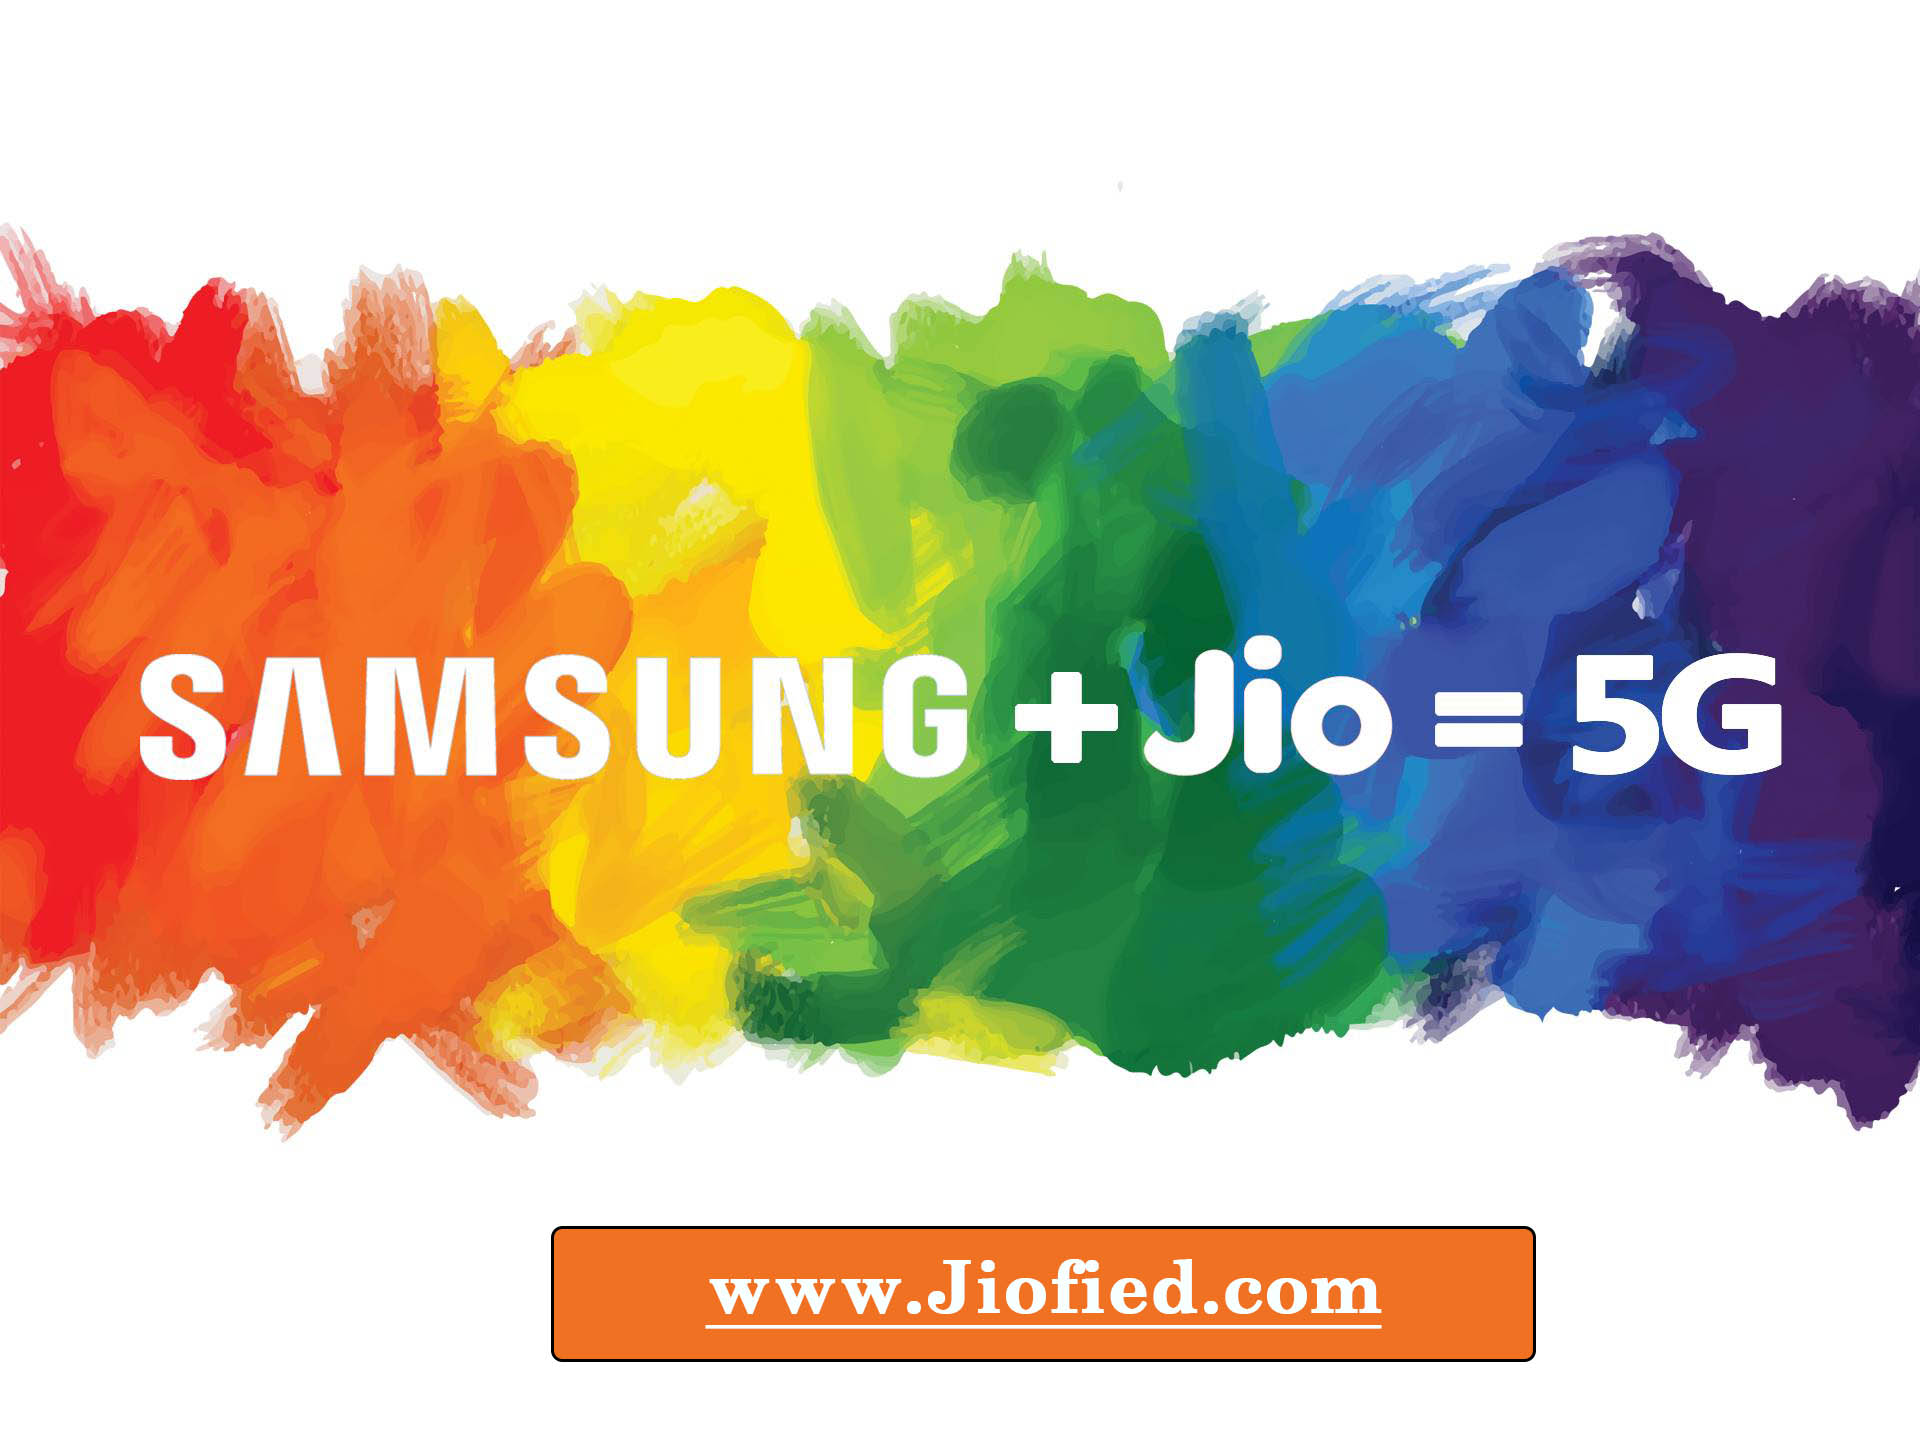 Samsung & Jio 5G to India